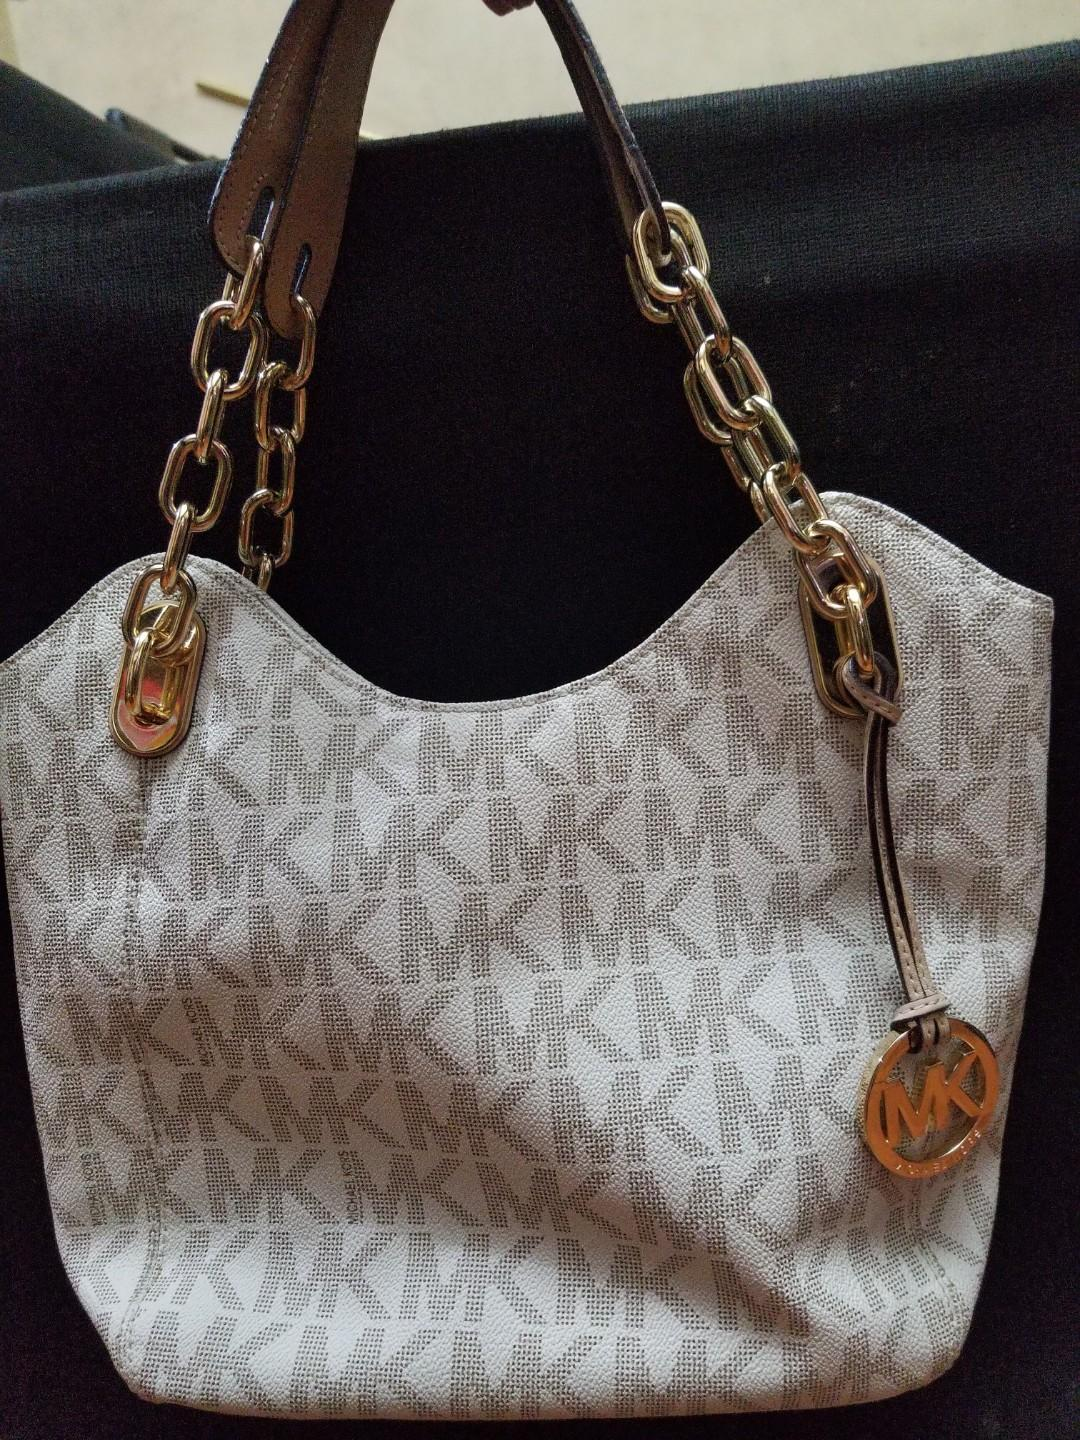 16f5ecf84fb0 ORIGINAL Michael Kors Bag on Carousell